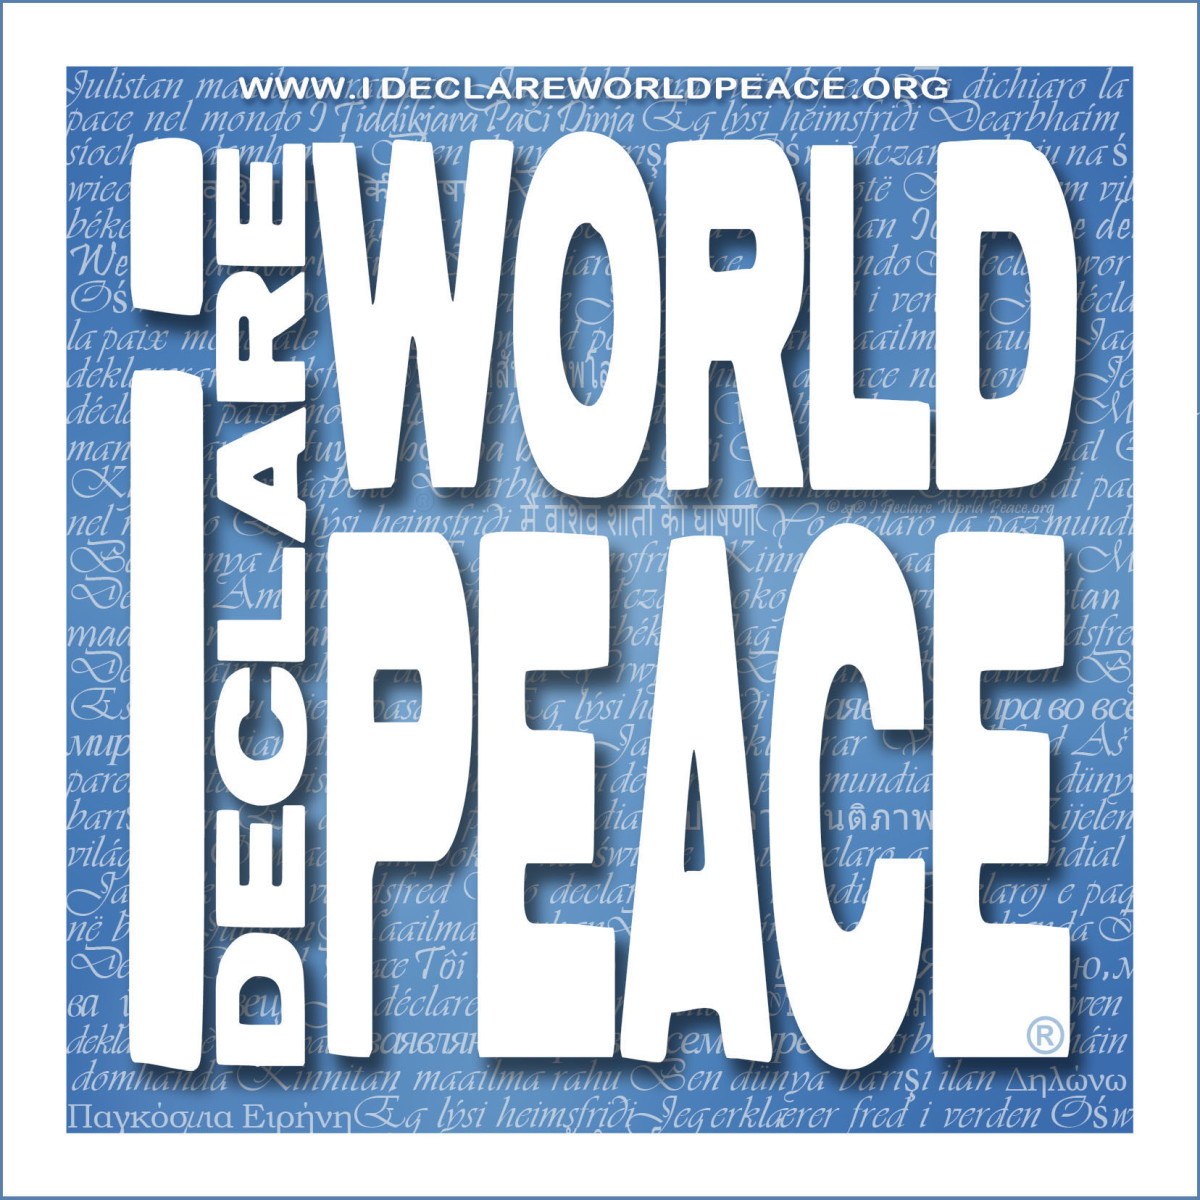 I Declare World Peace. If you do too, spread the word!